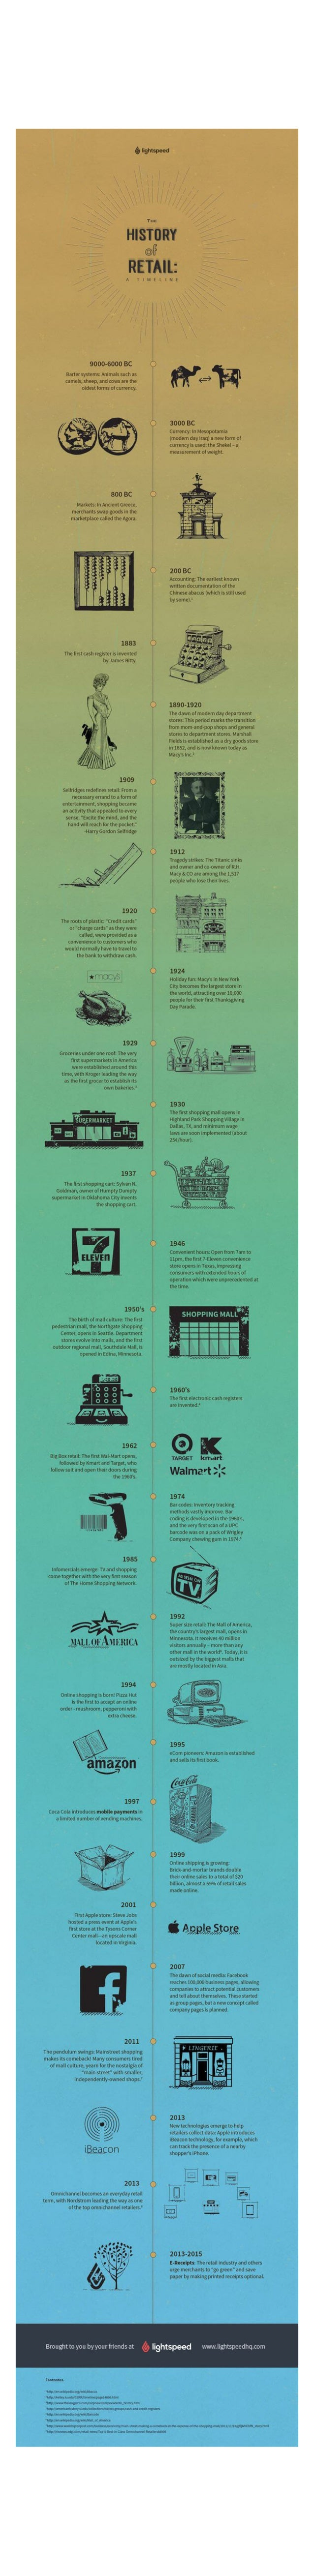 The History of Retail: A Timeline